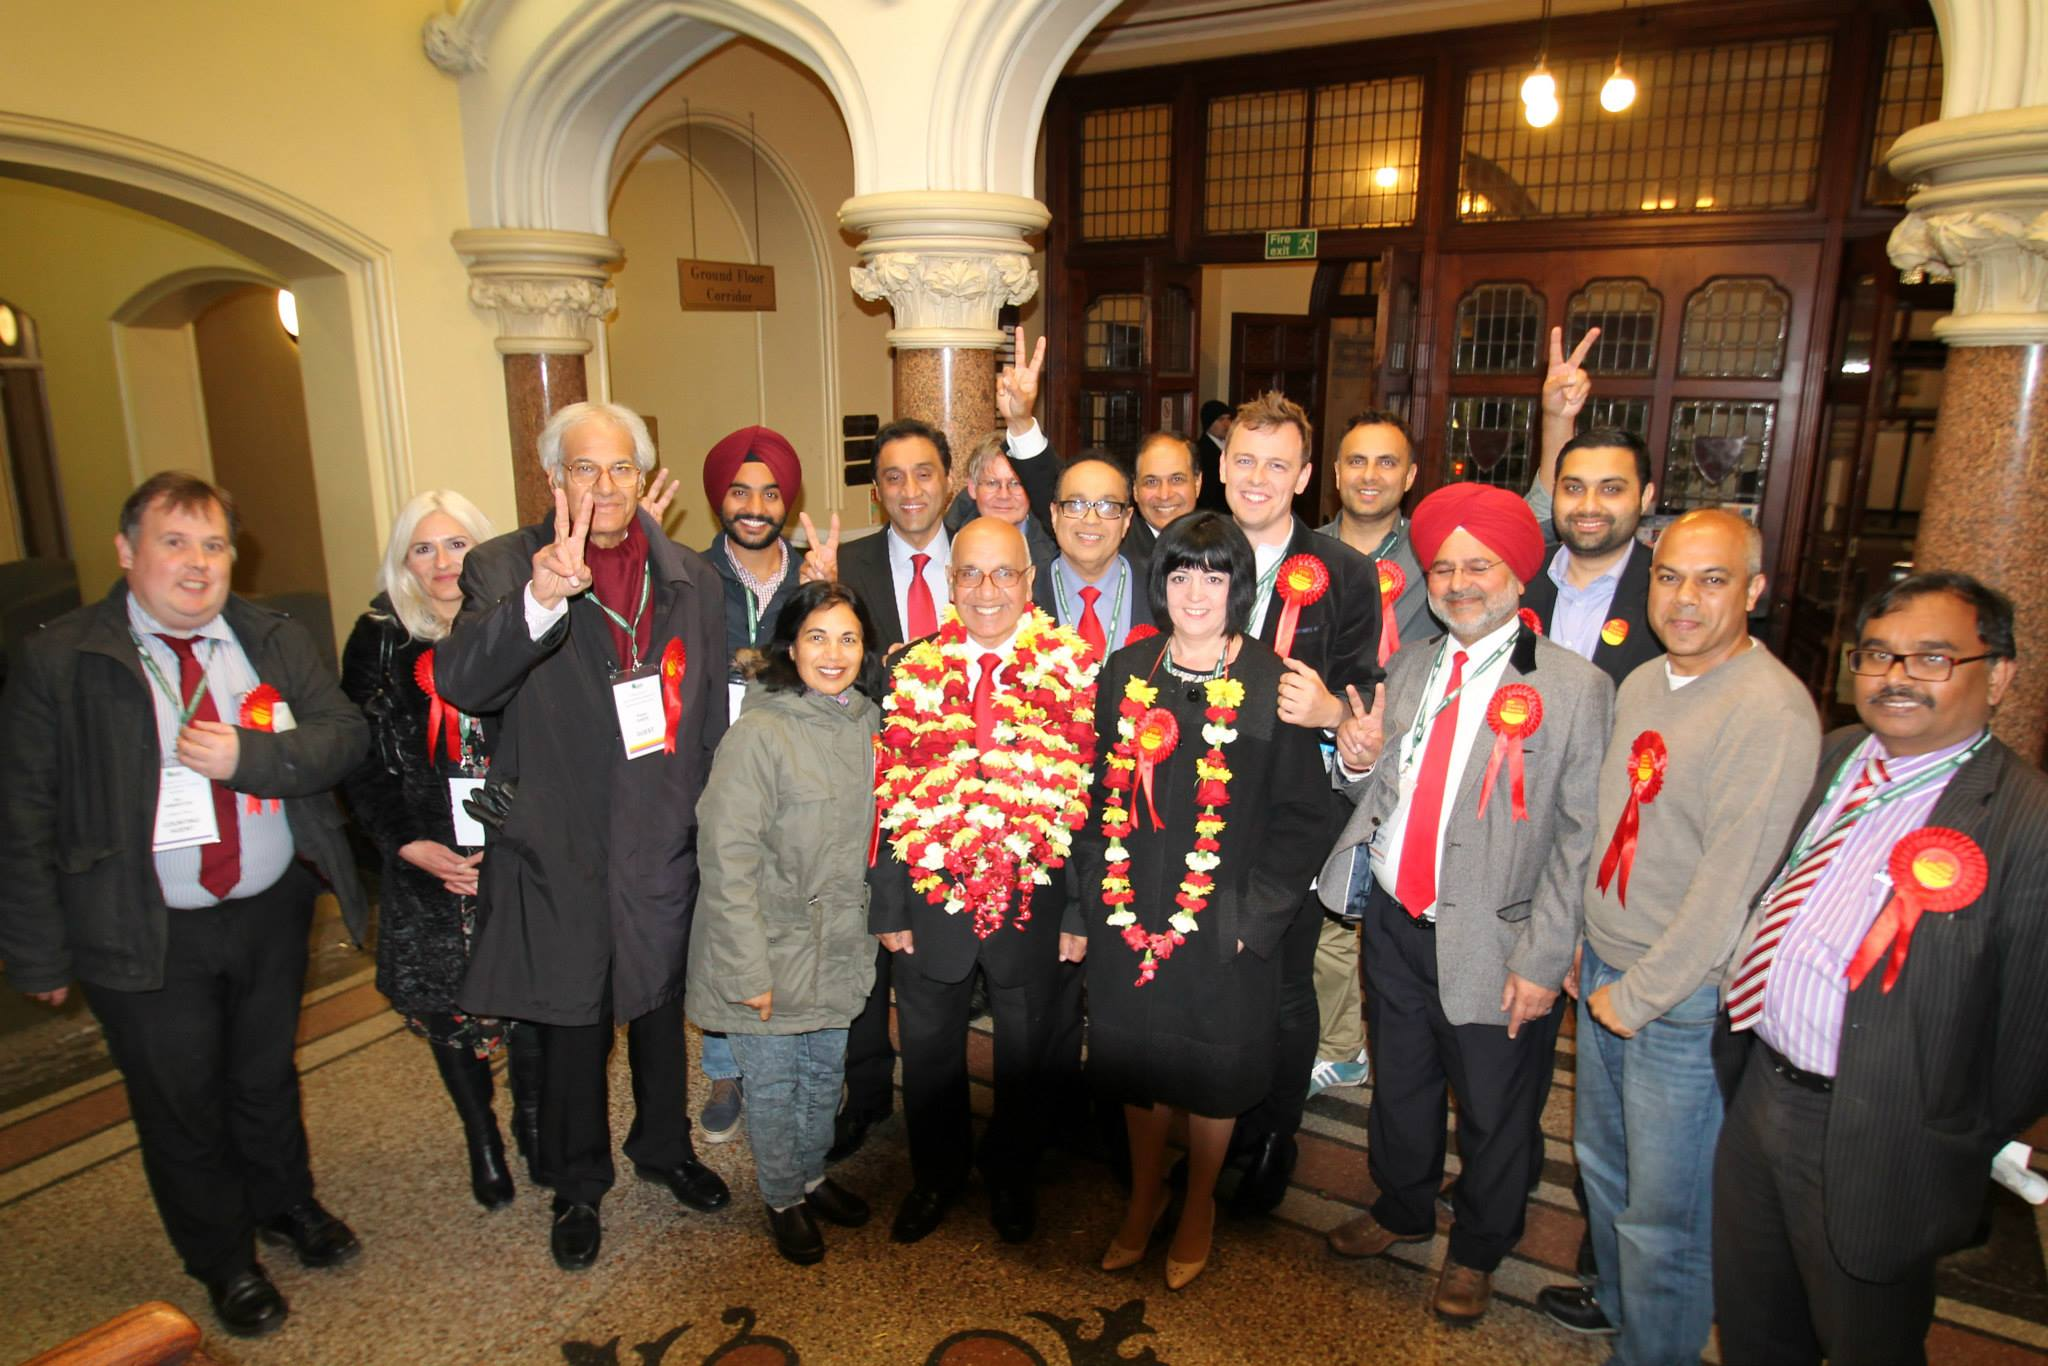 Mr Virendra Sharma MP and his supporters celebrating the re-election victory